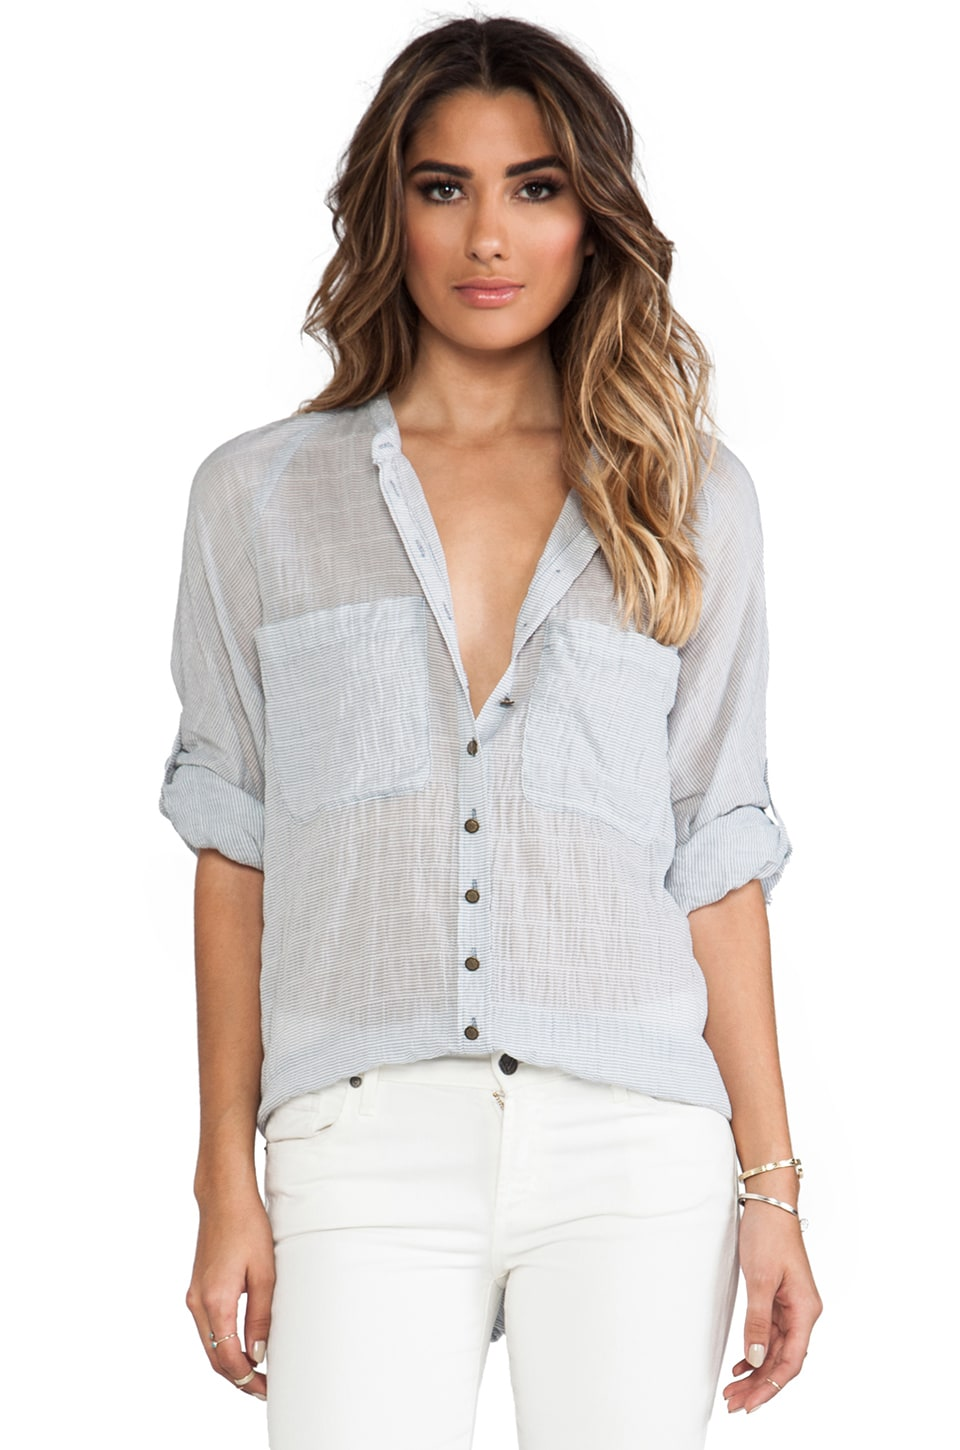 Free People Put Your Back Into It Top in Chambray Combo